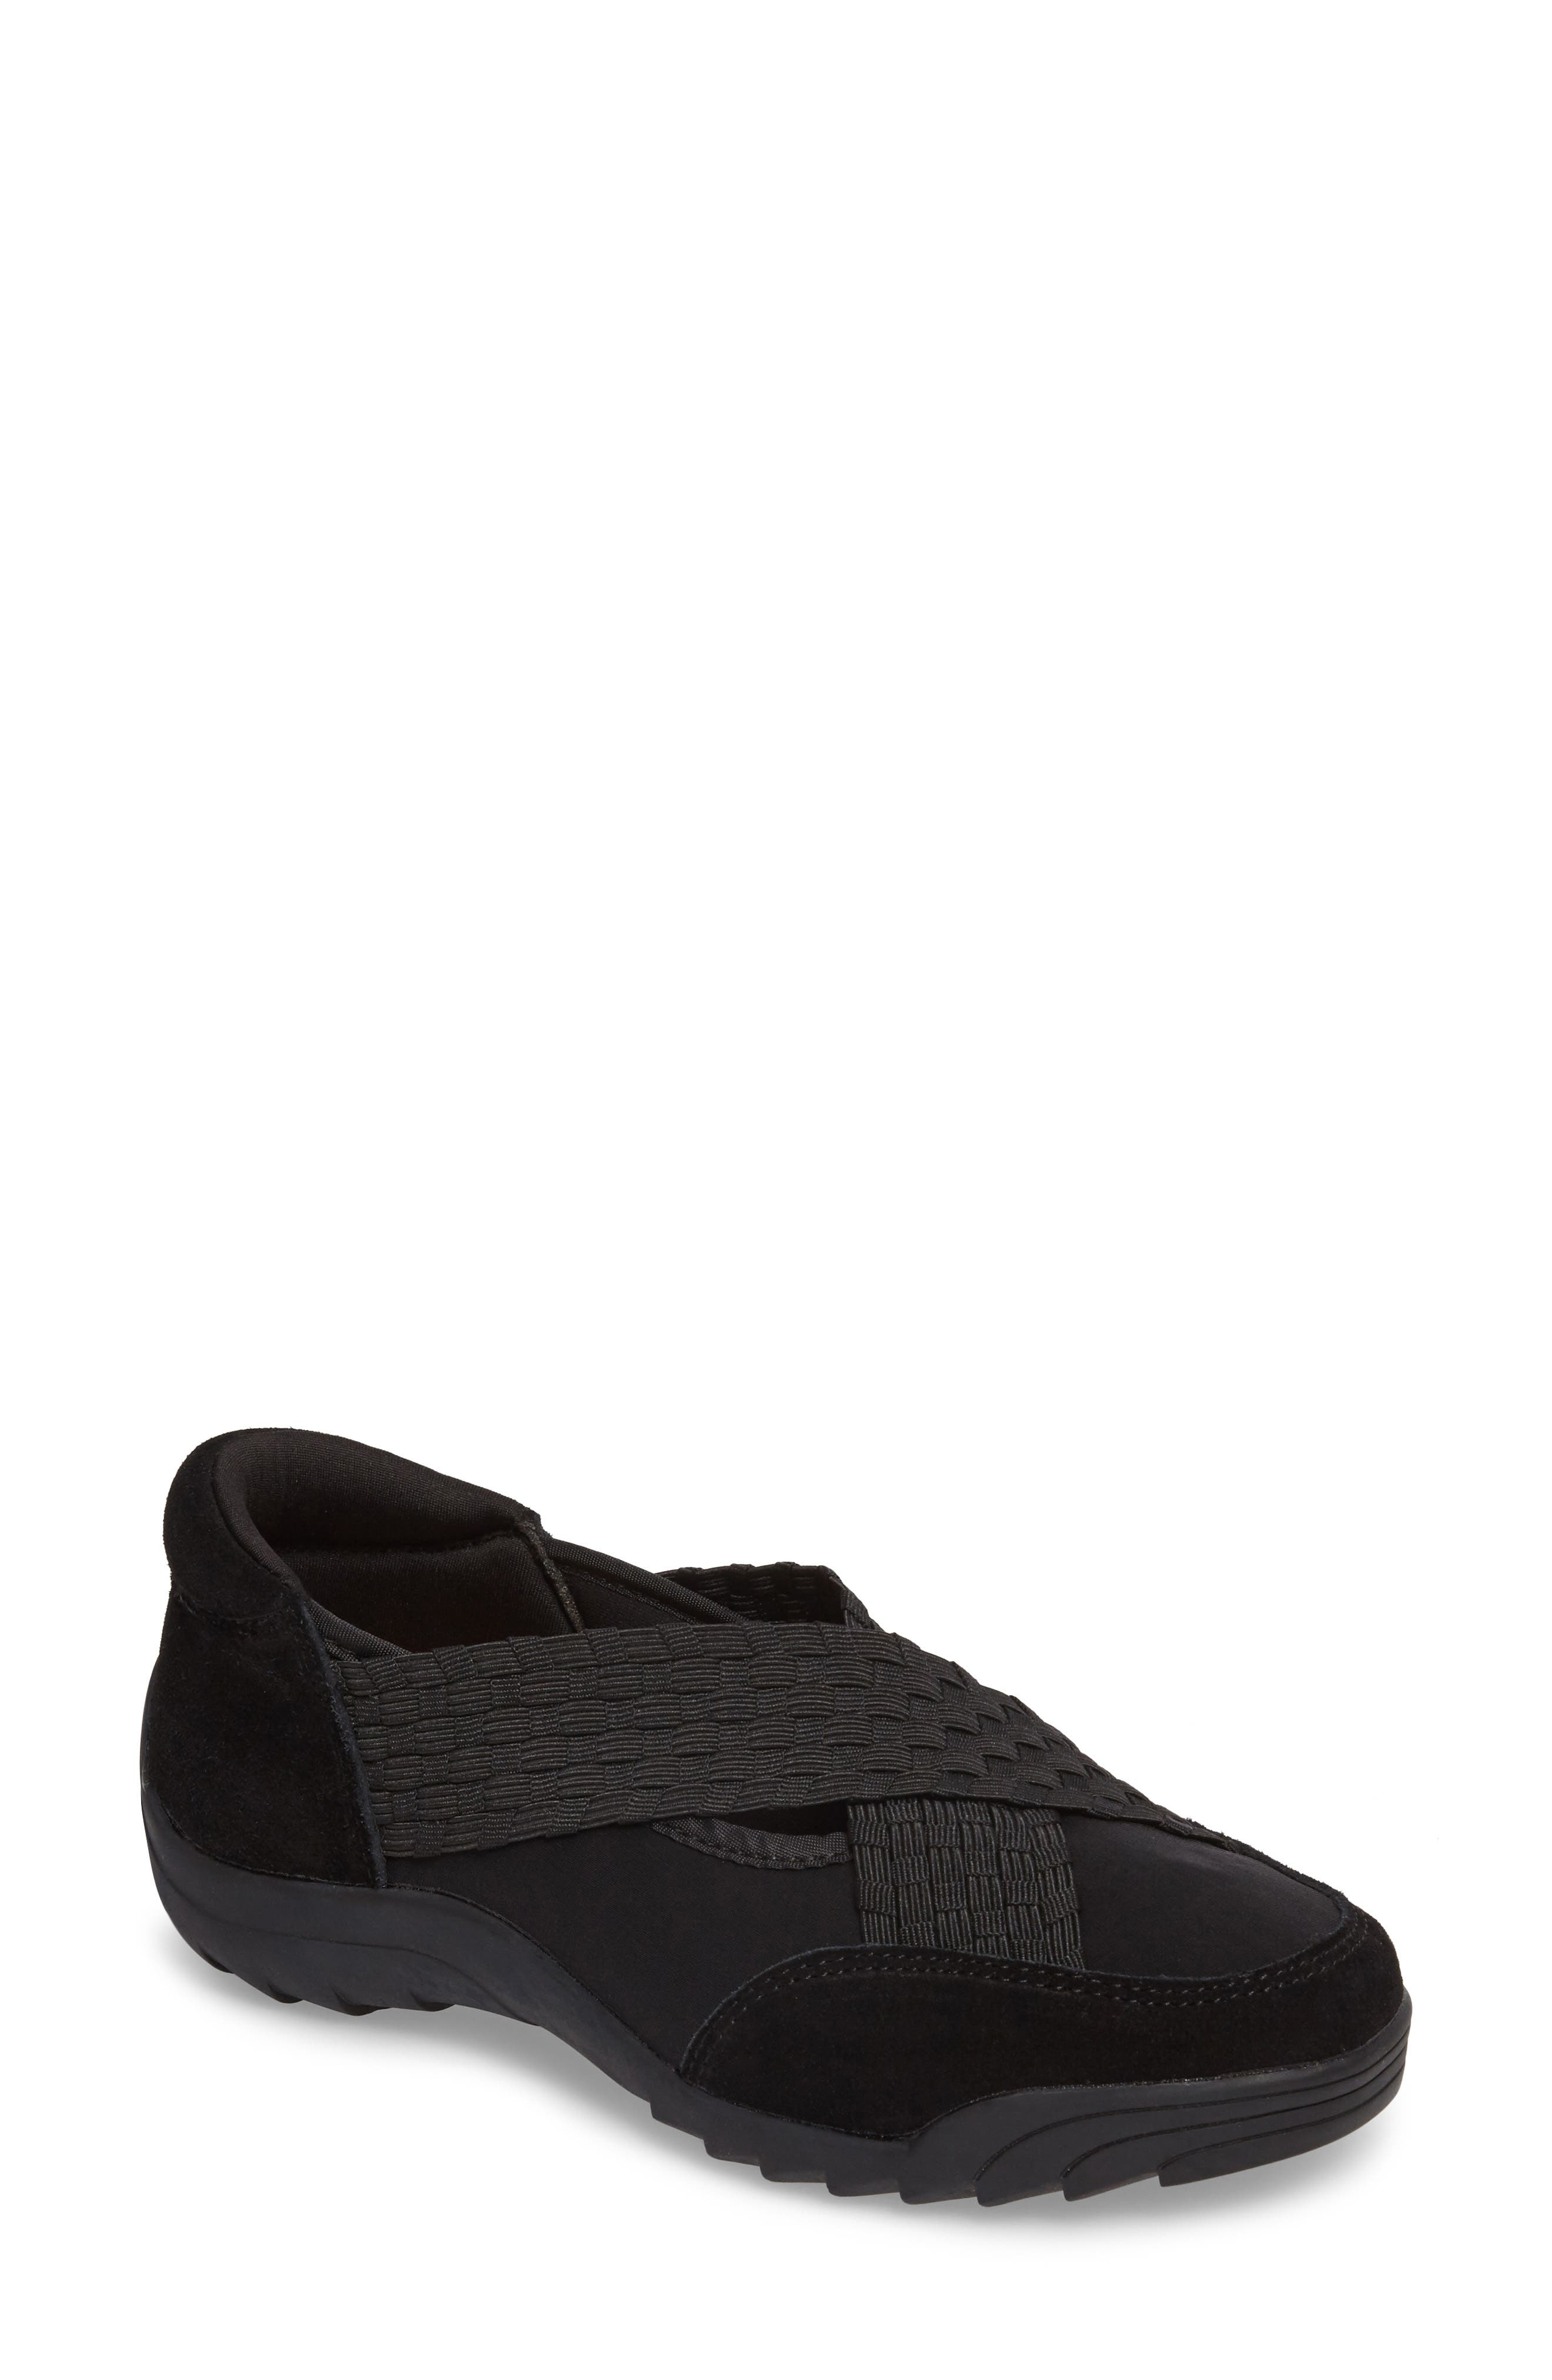 Rigged Phoenix Slip-On Sneaker,                             Main thumbnail 1, color,                             Black Fabric